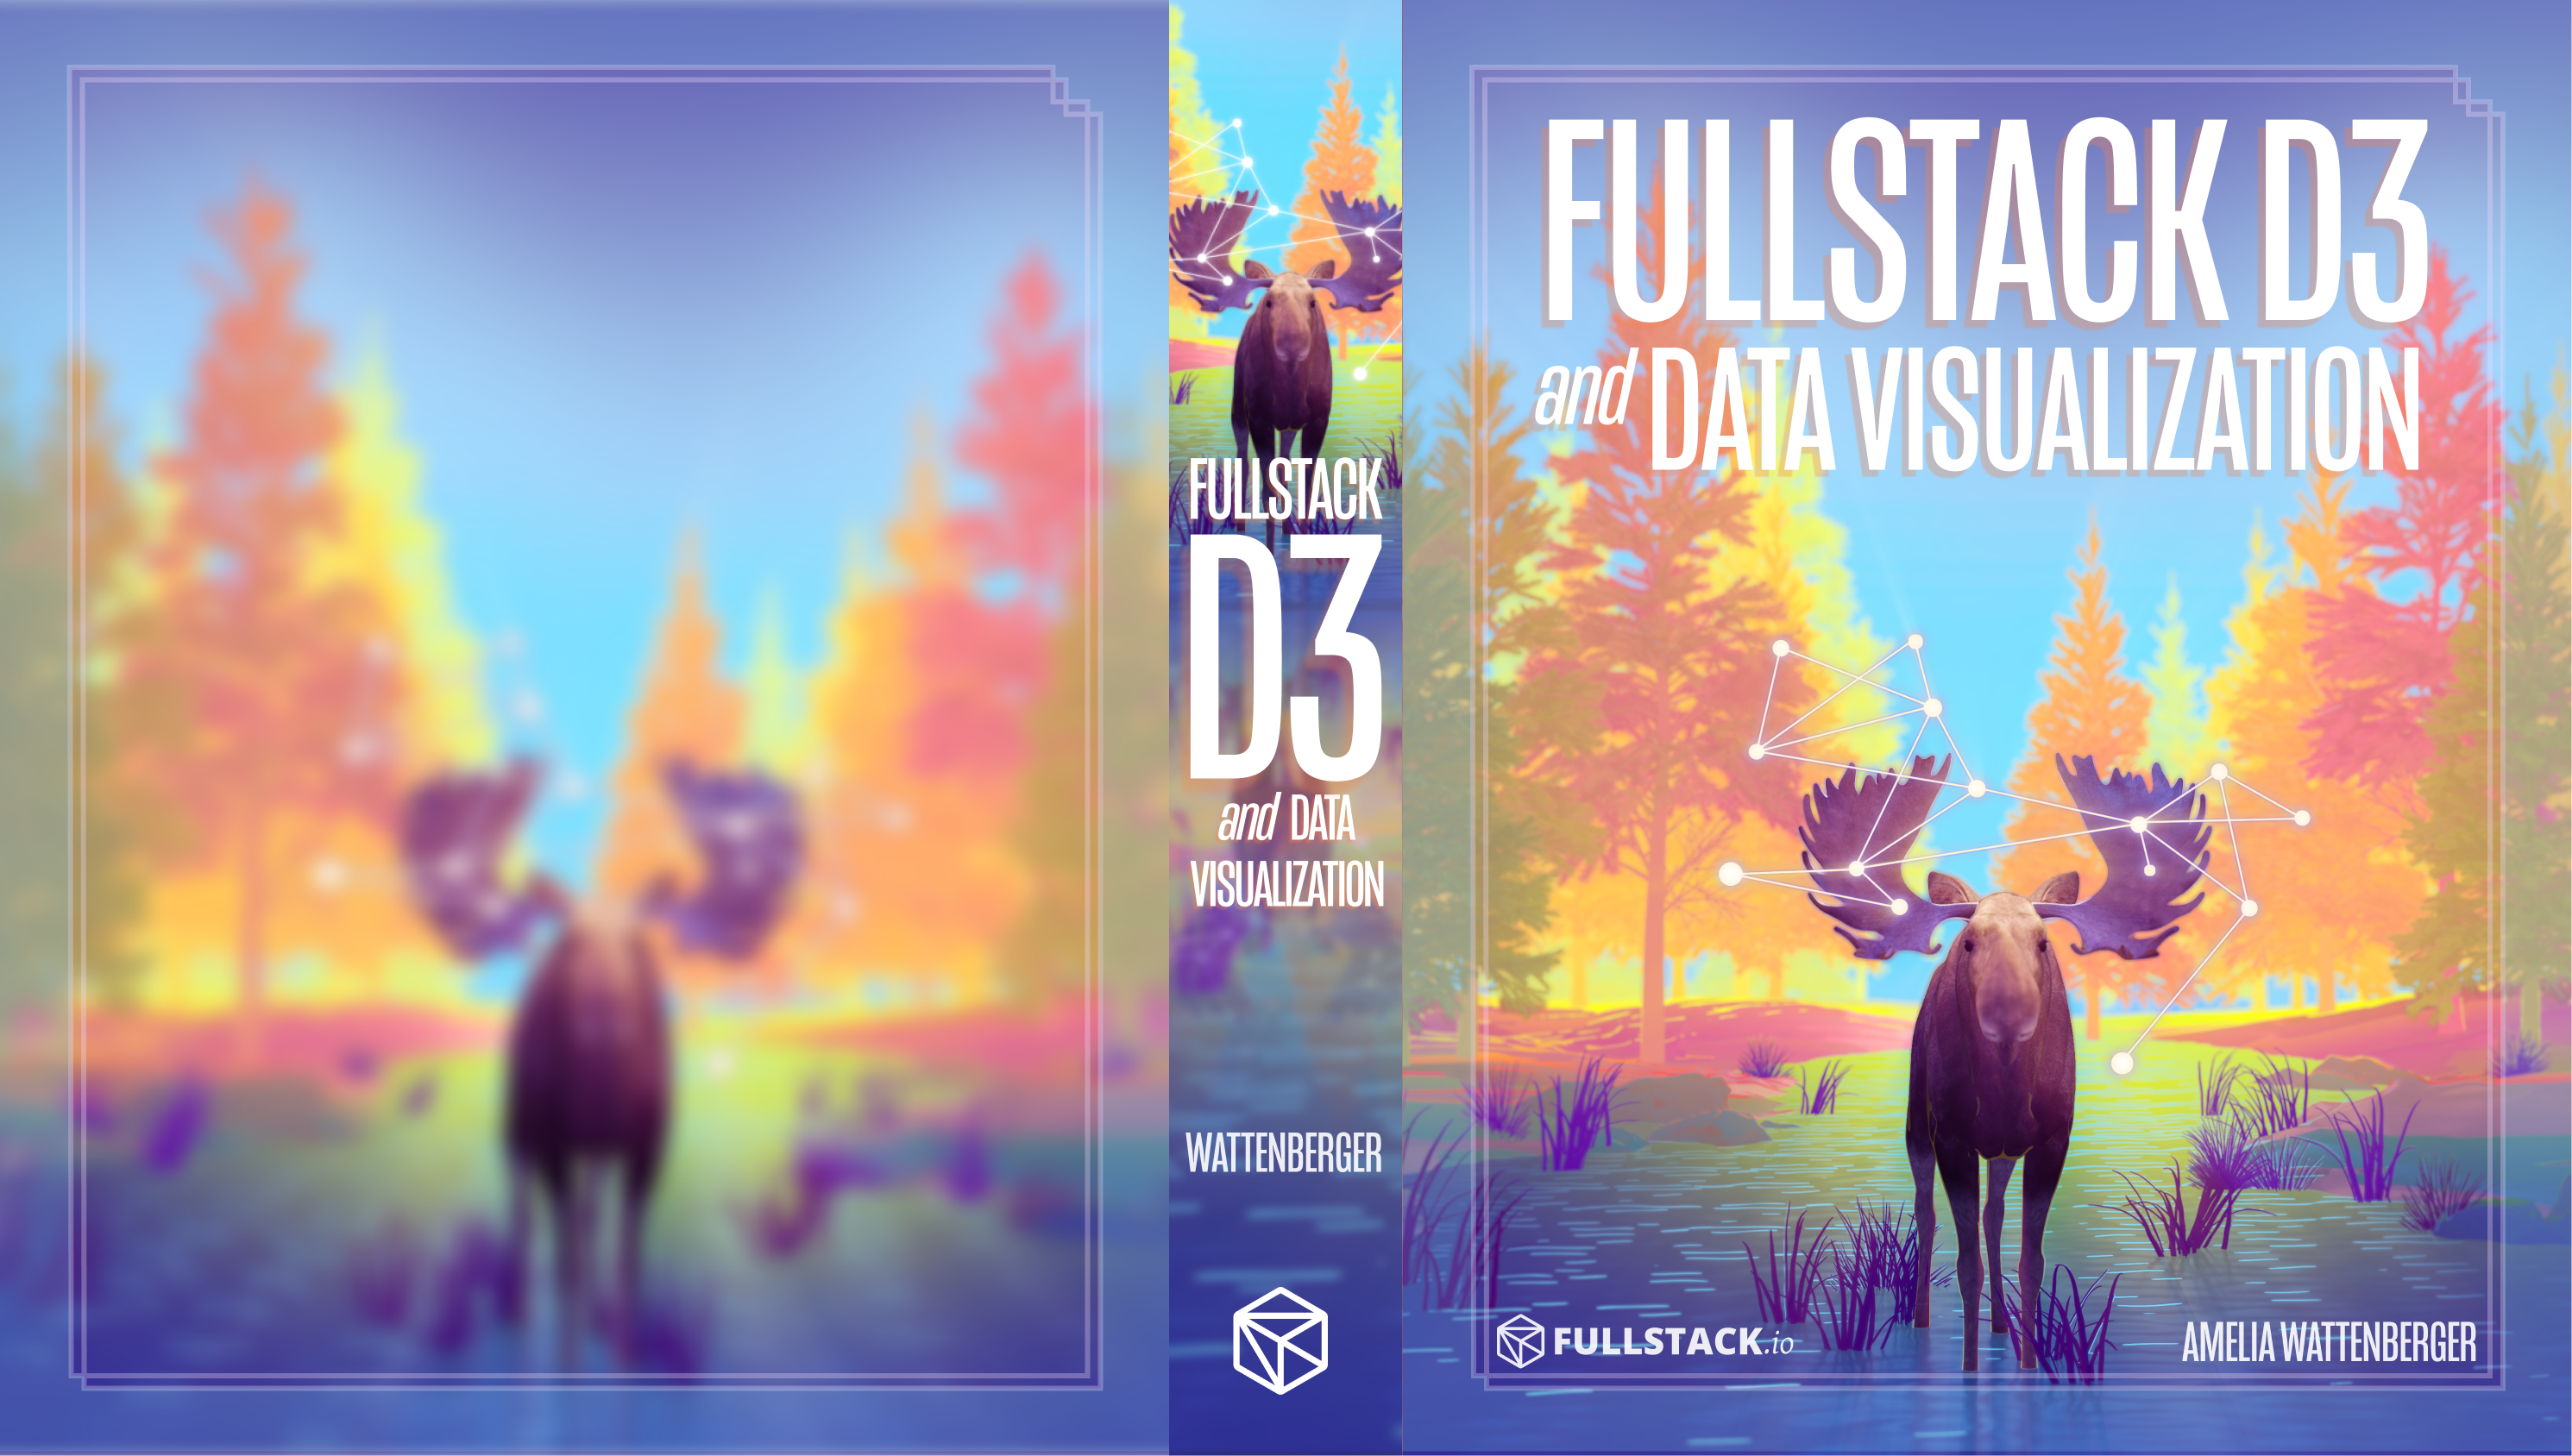 Fullstack D3 and Data Visualization: The Complete Guide to